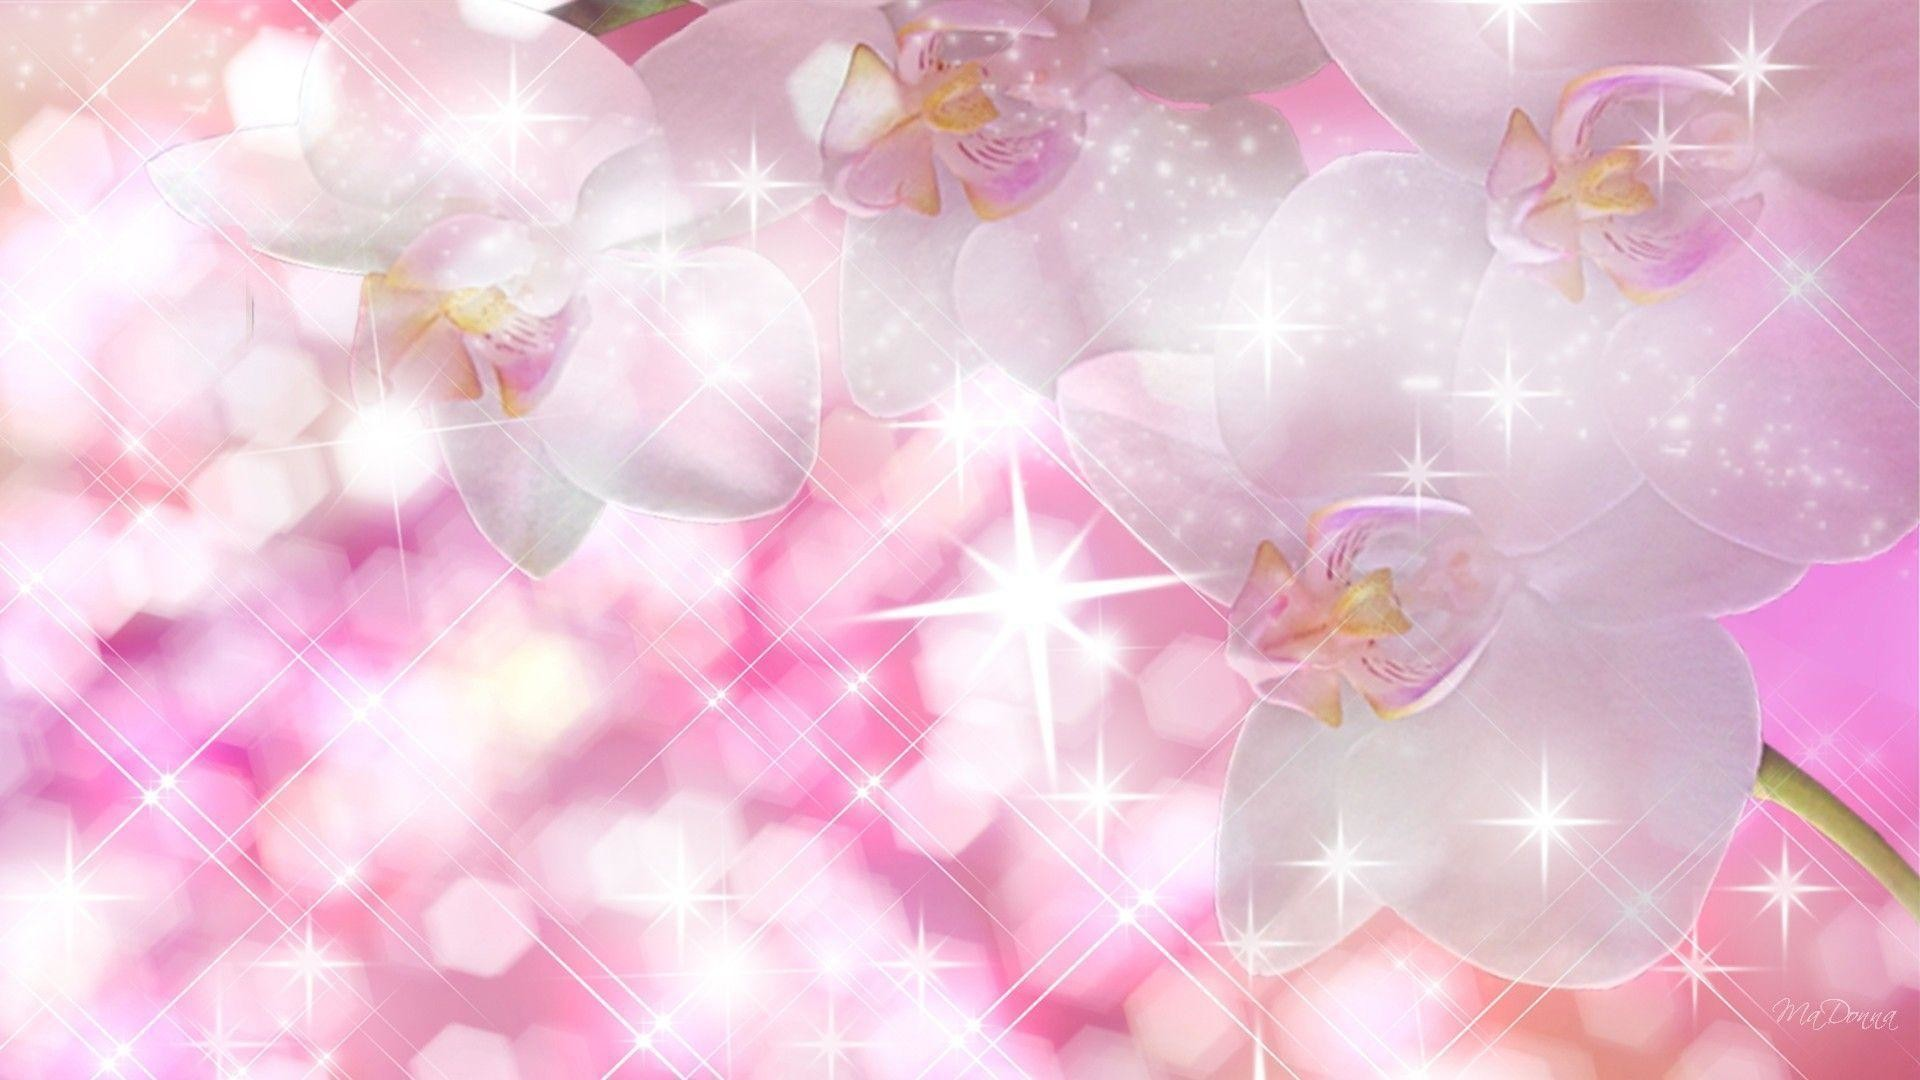 Wallpaper: Wallpapers For Gt Pink Sparkle Wallpaper, White Sparkle .